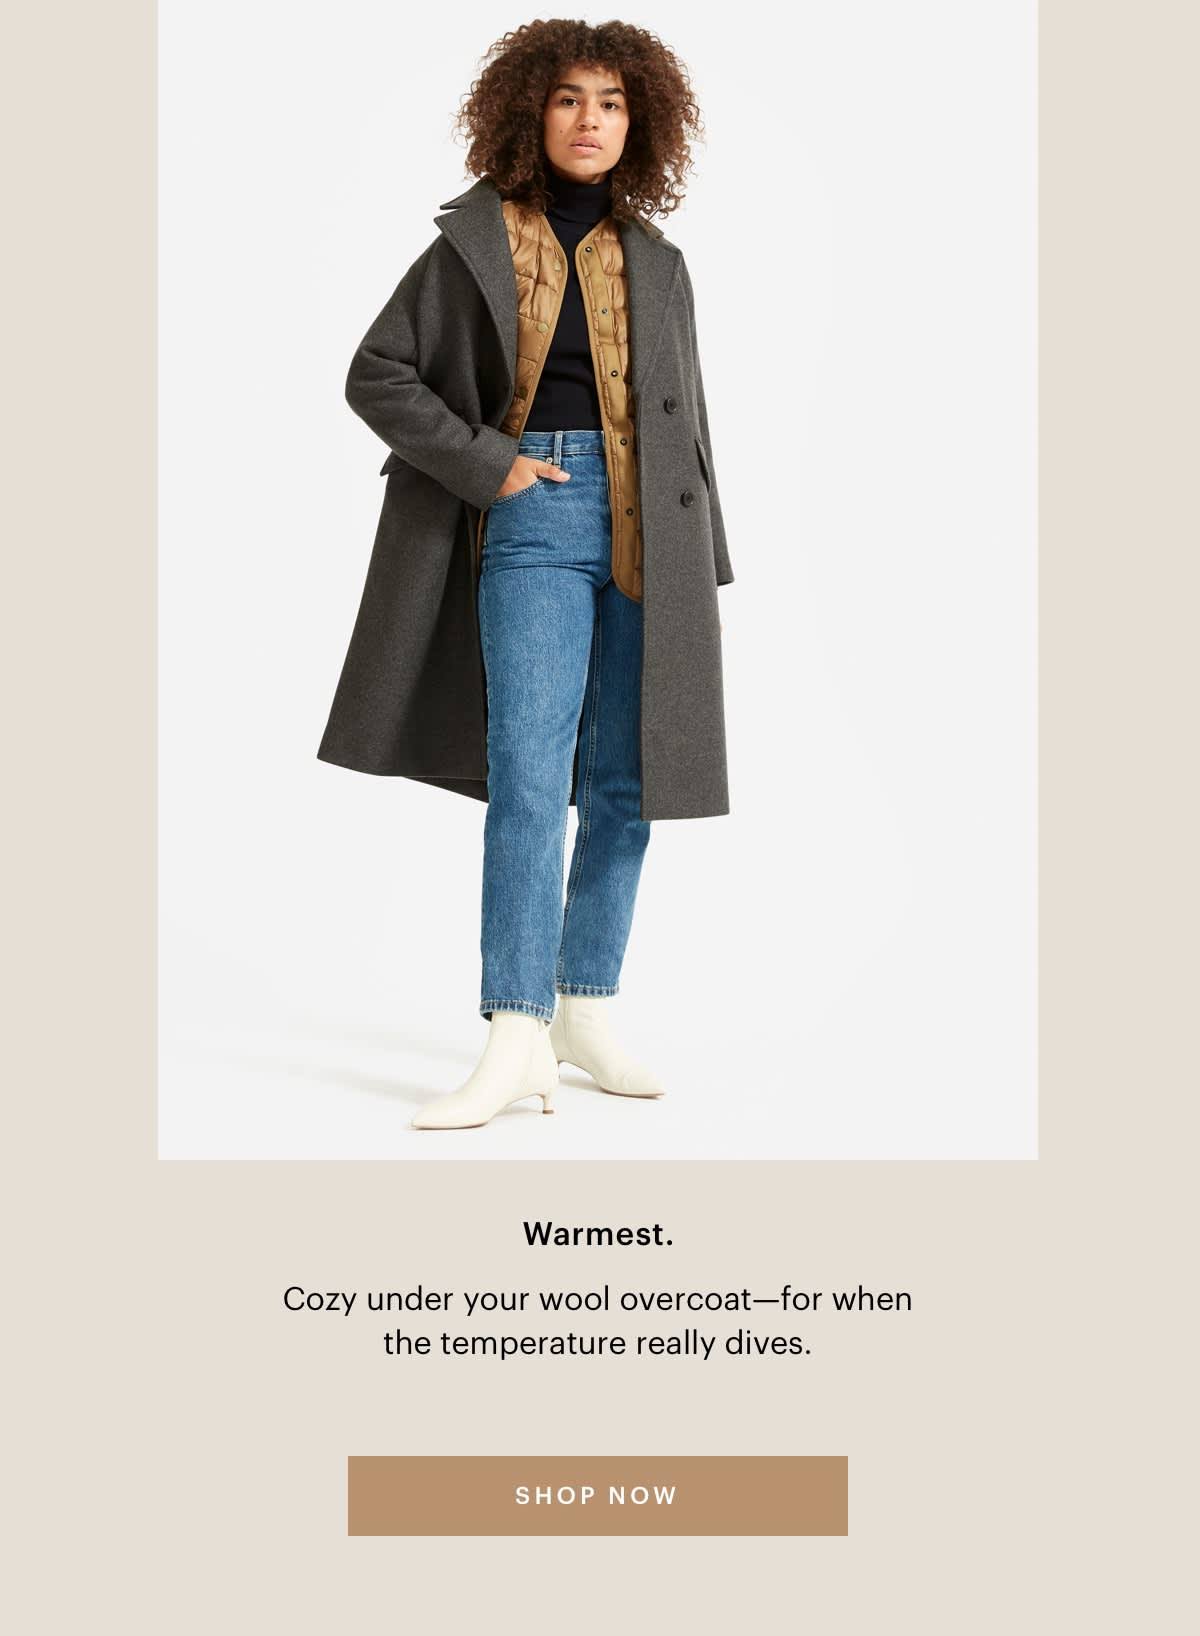 Cozy under your wool overcoat—for when the temperature really dives.